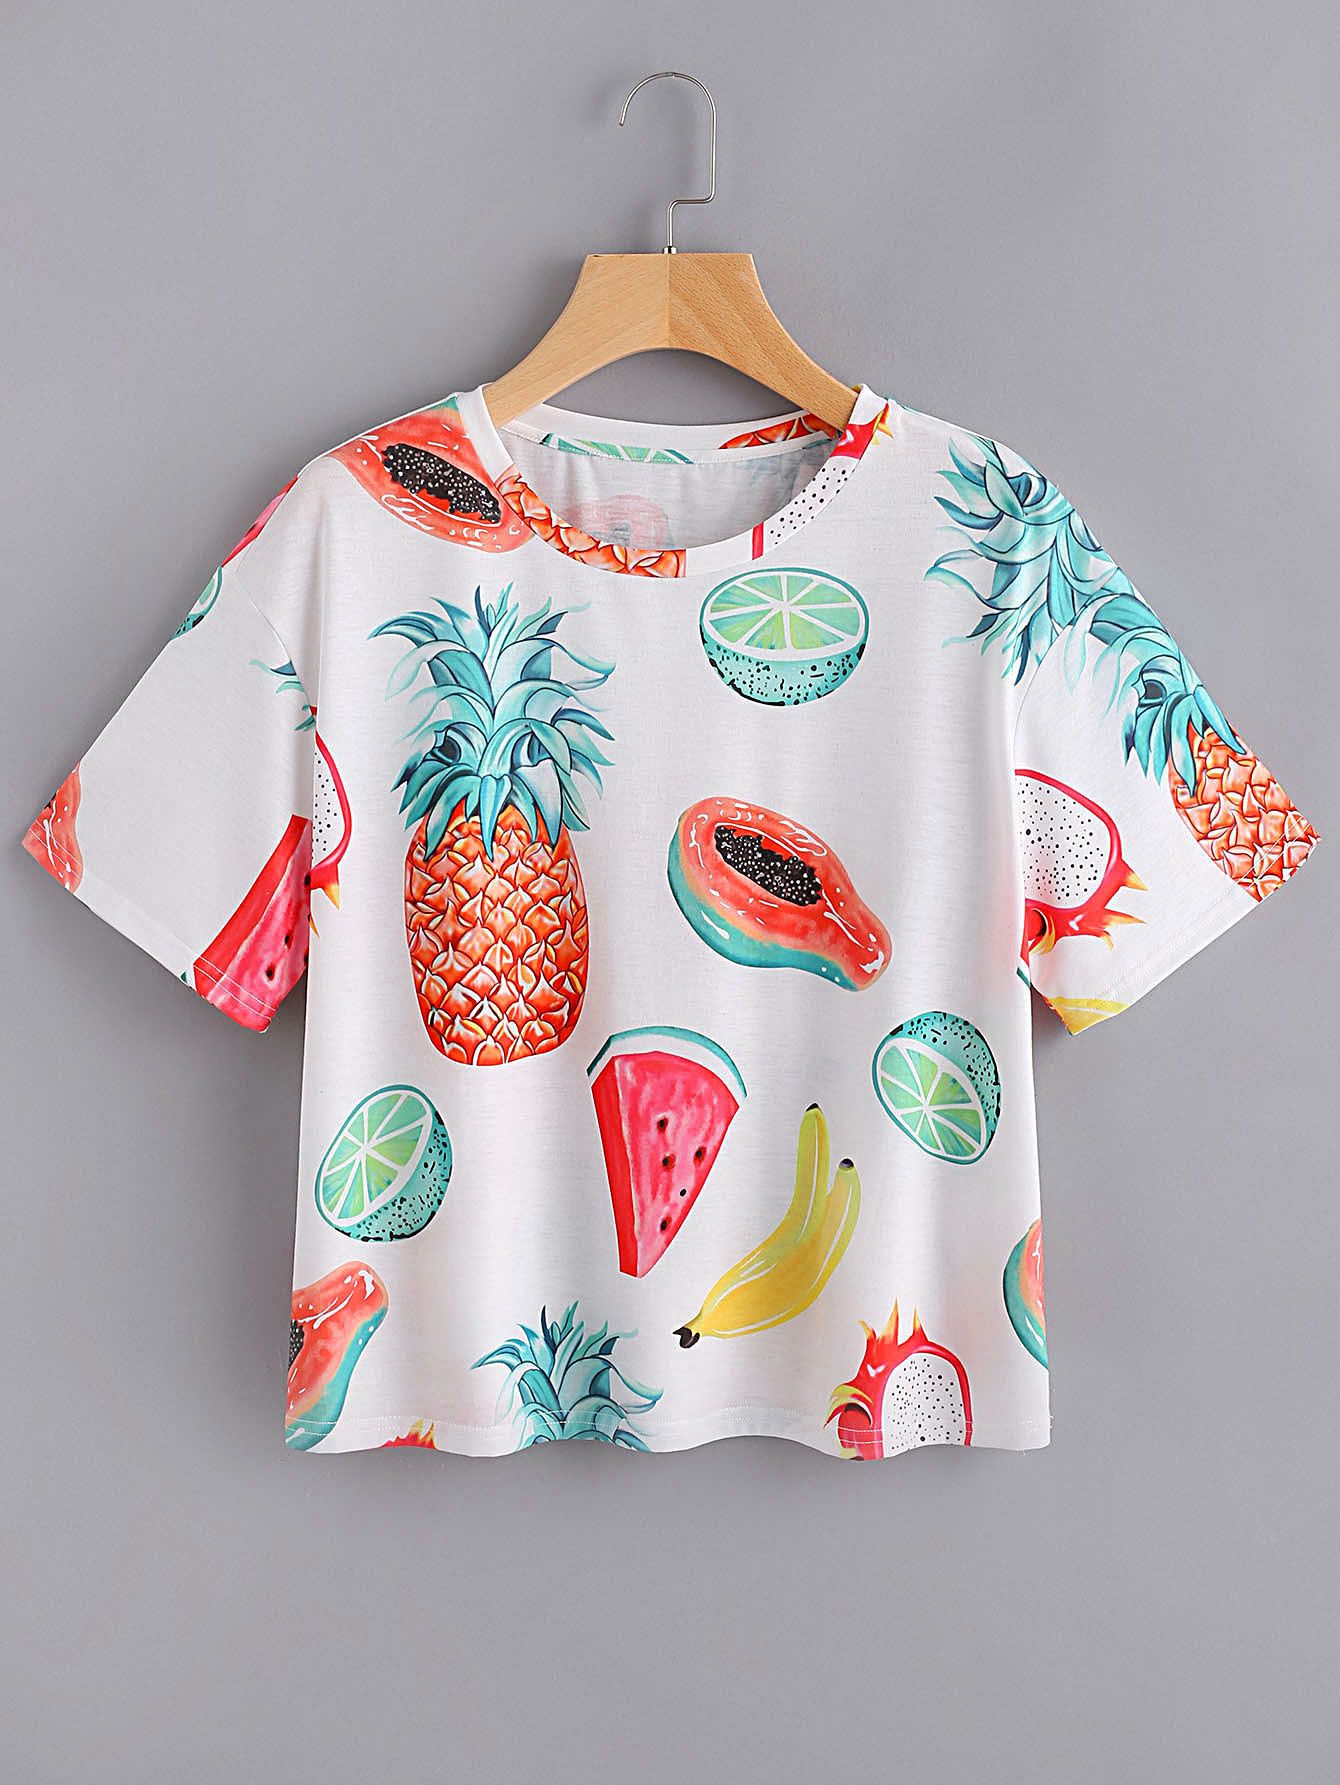 Allover Fruit Print T-shirt | Fruit print, Printing and Shopping